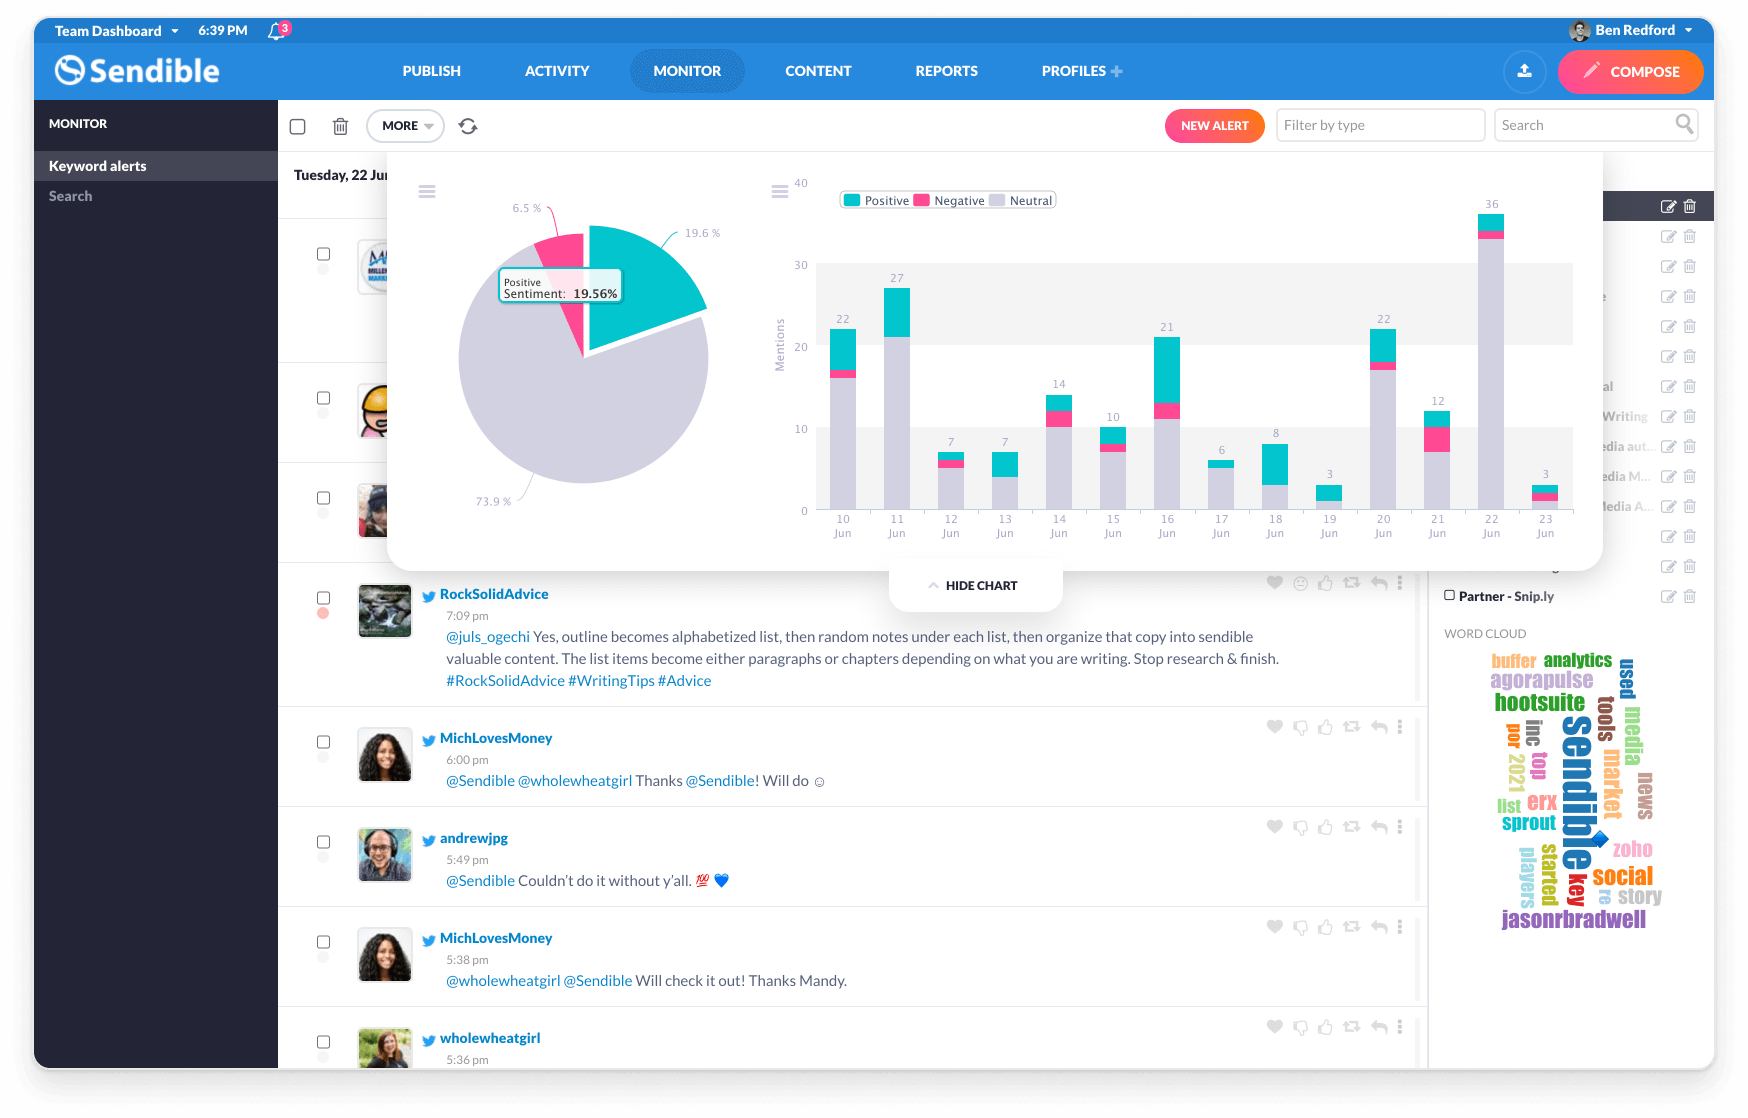 Sendible Software - Proactively monitor conversations on Facebook, Twitter, Instagram, YouTube and LinkedIn to keep you in the know. Respond to comments and direct messages in one place and keep an eye on your client's brand, industry and competitors.